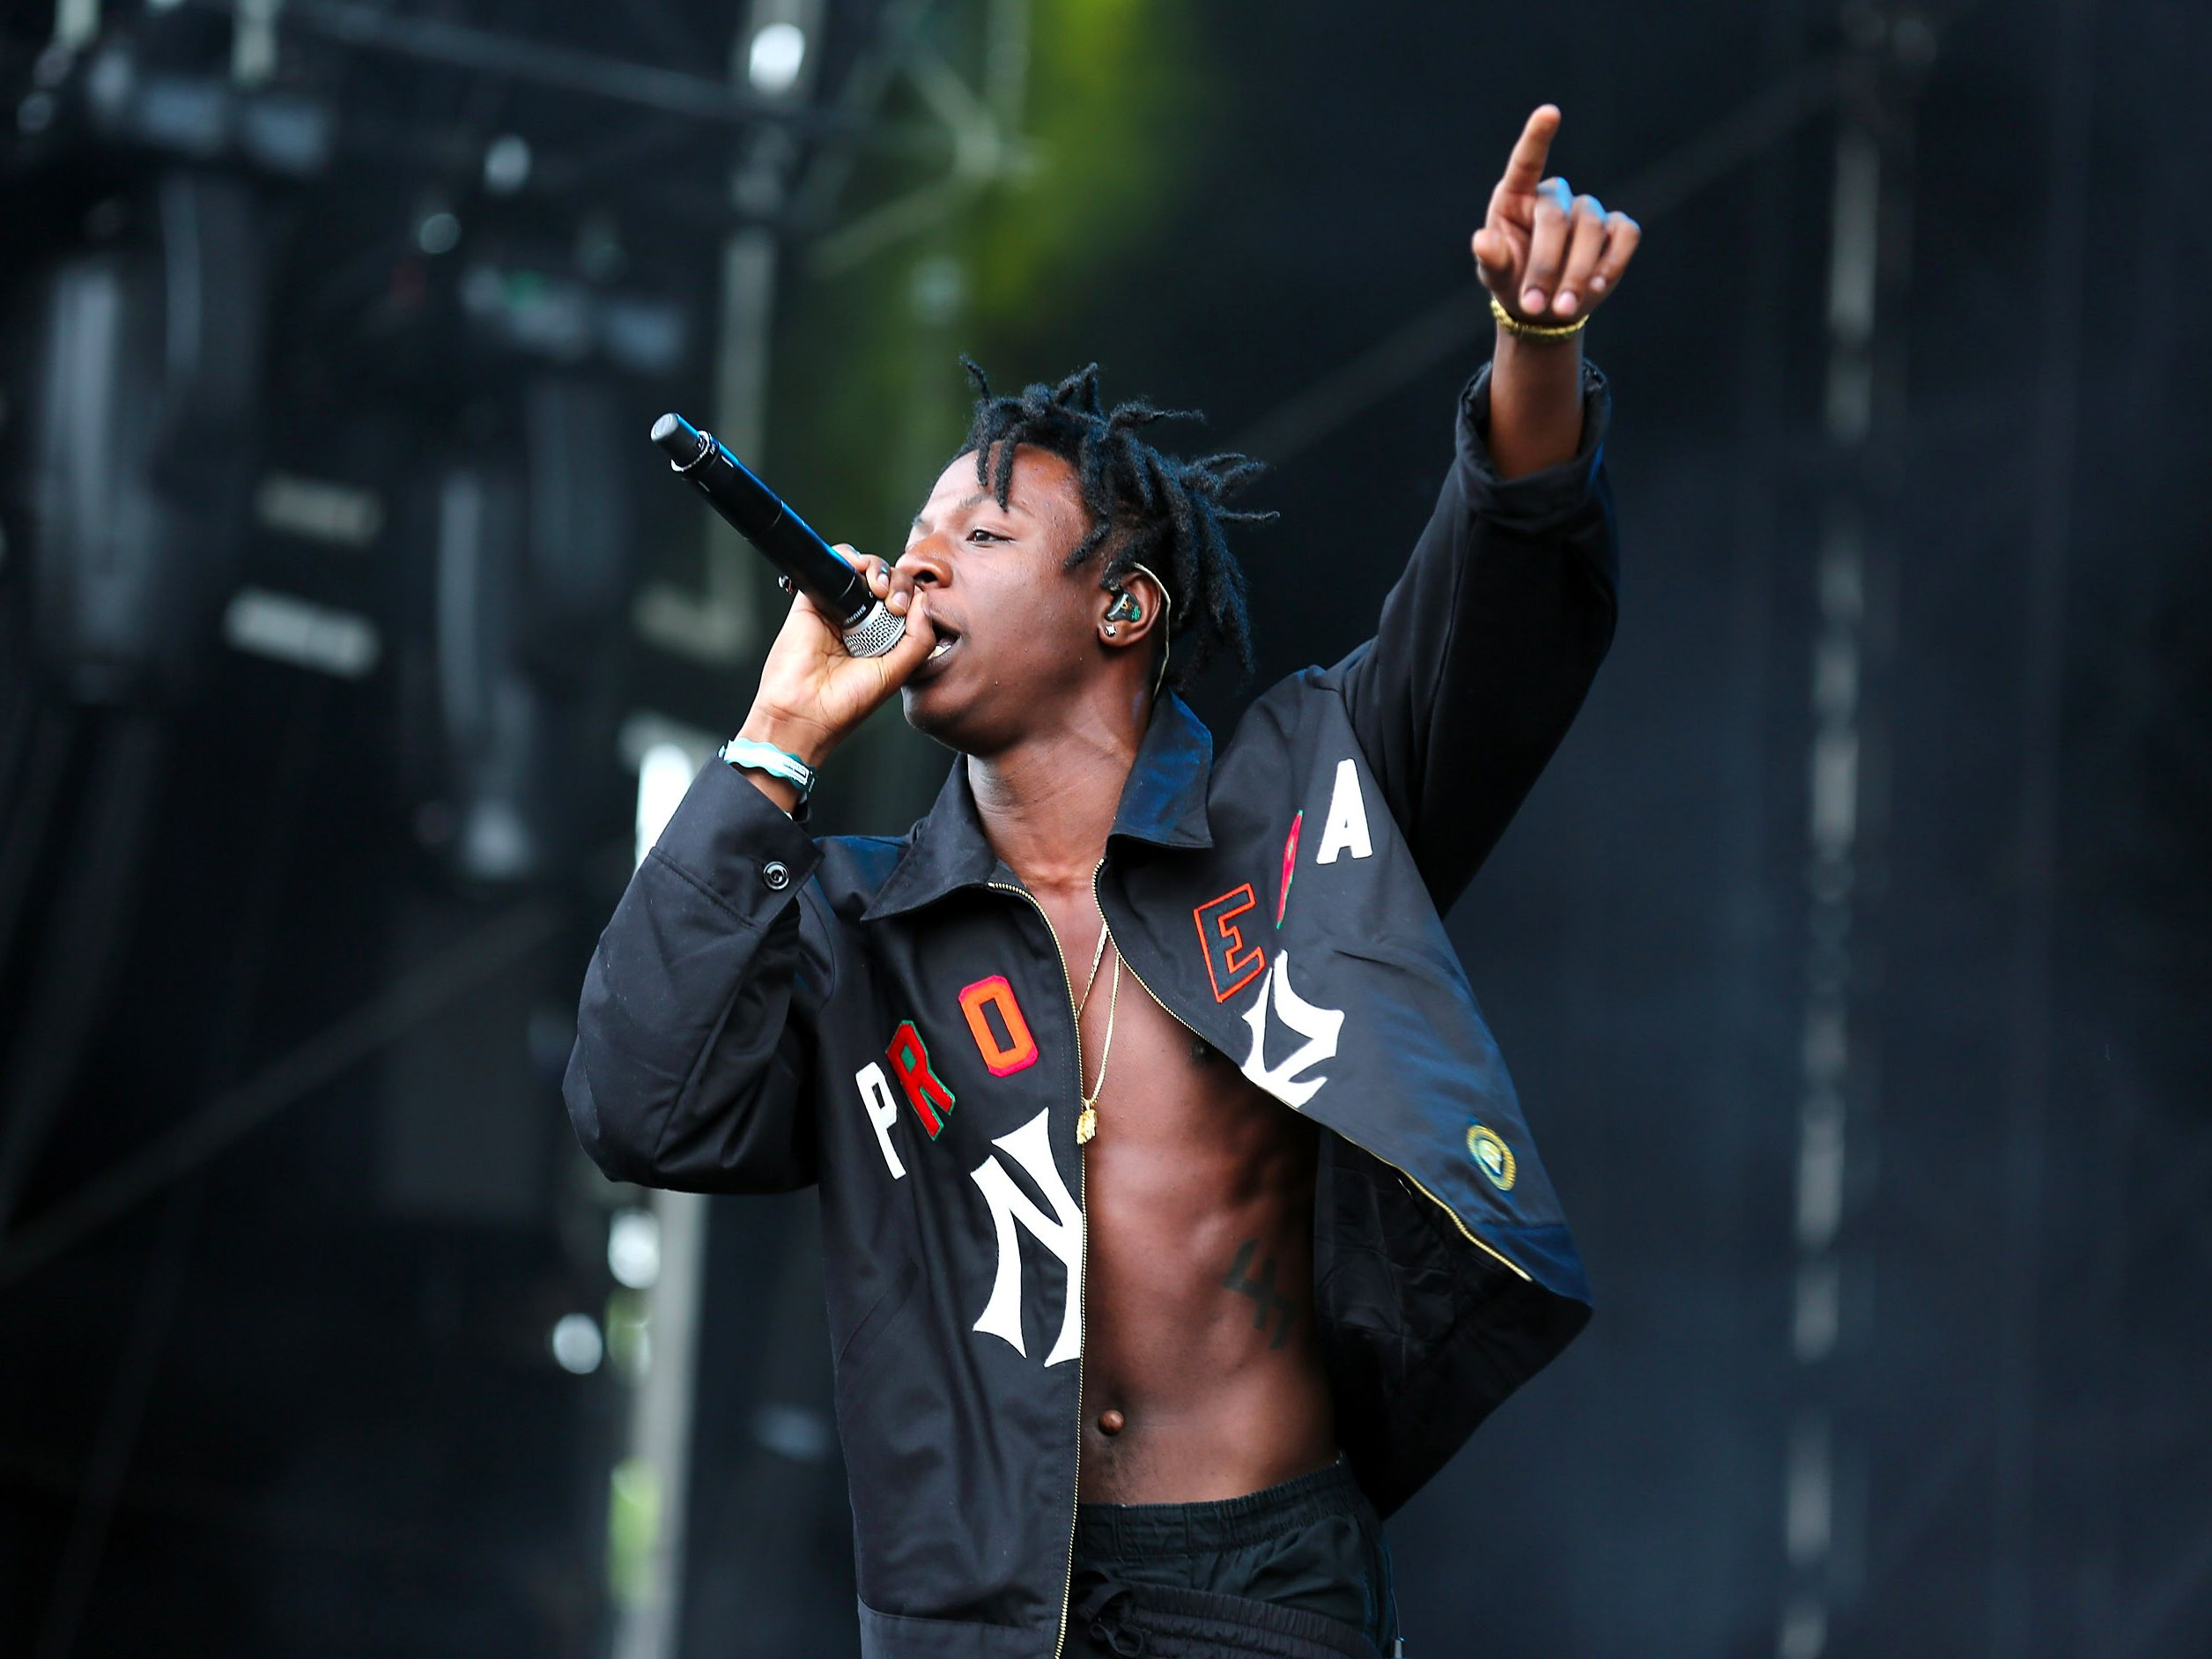 Joey Bada$$' 'ABBA' Album is 90 Percent Complete